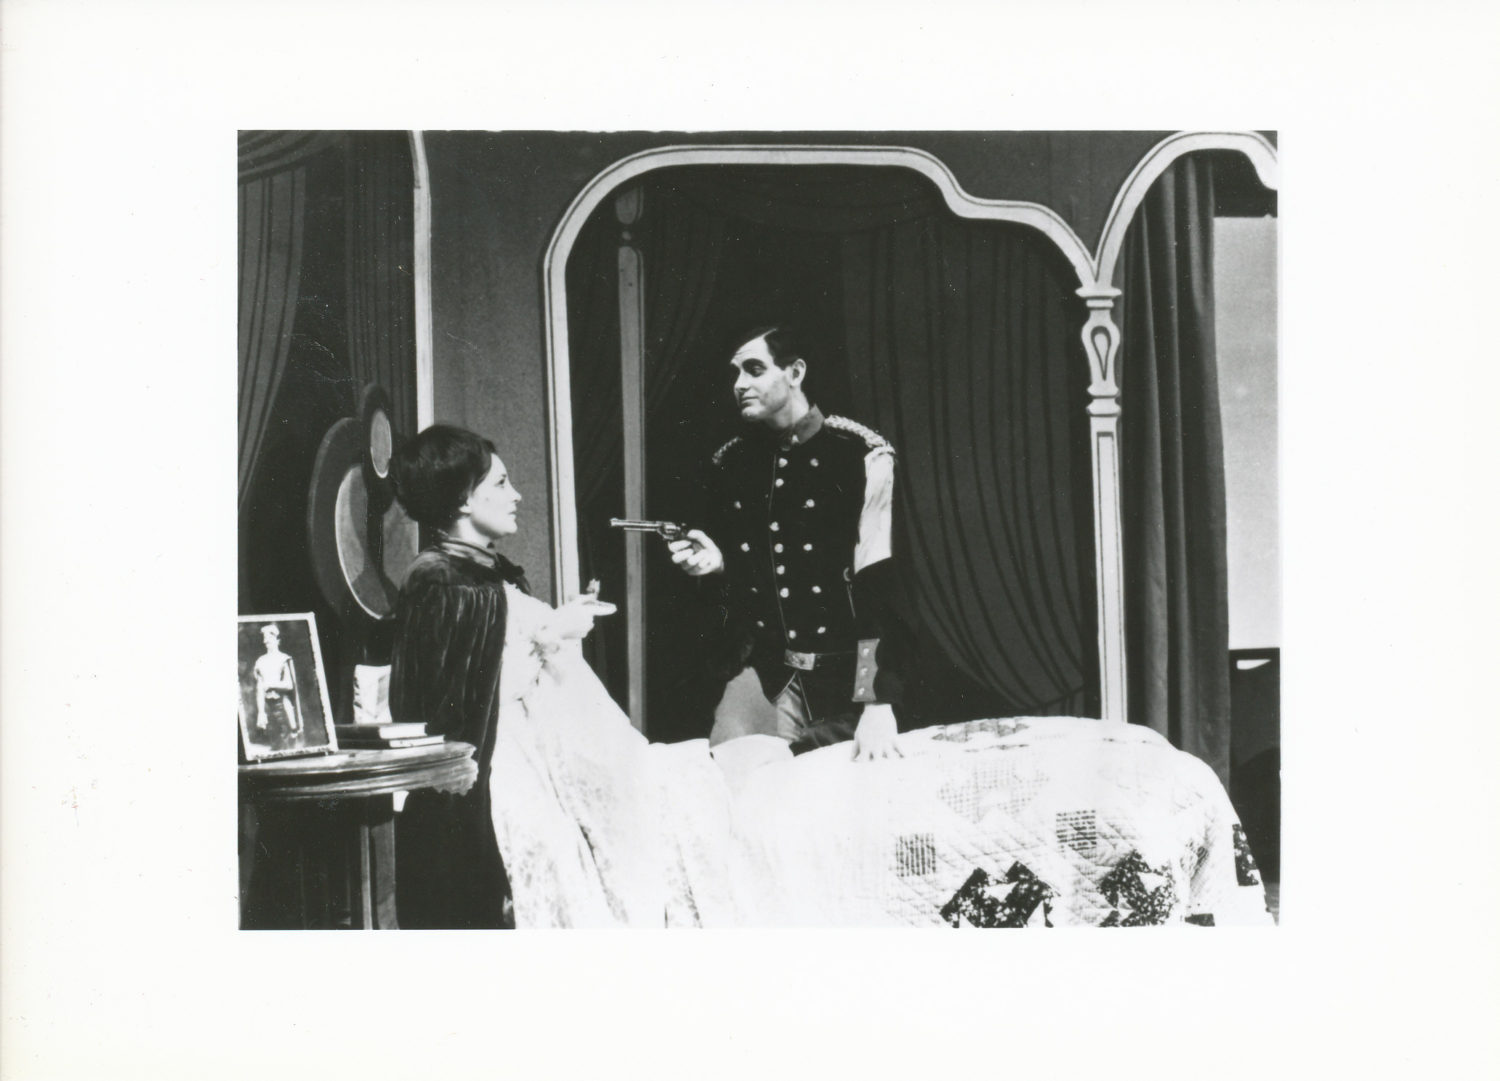 Parnell Hall as Captain Bluntschli holds Wendy Nute as Raina at gunpoint in a summer stock production of Arms and the Man.